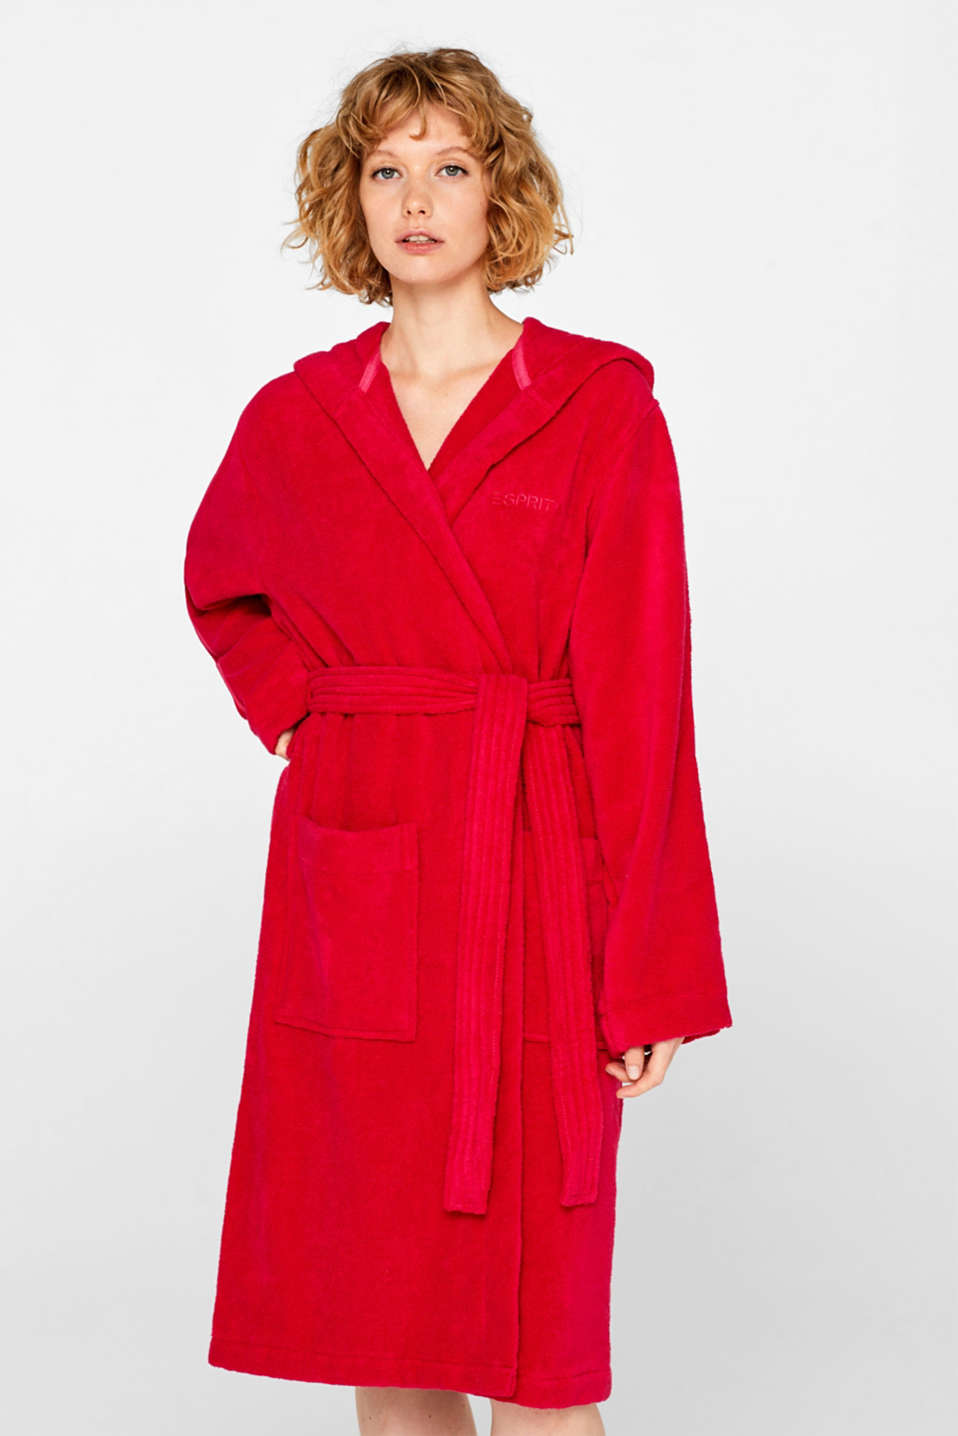 Esprit - Unisex bathrobe made of 100% cotton